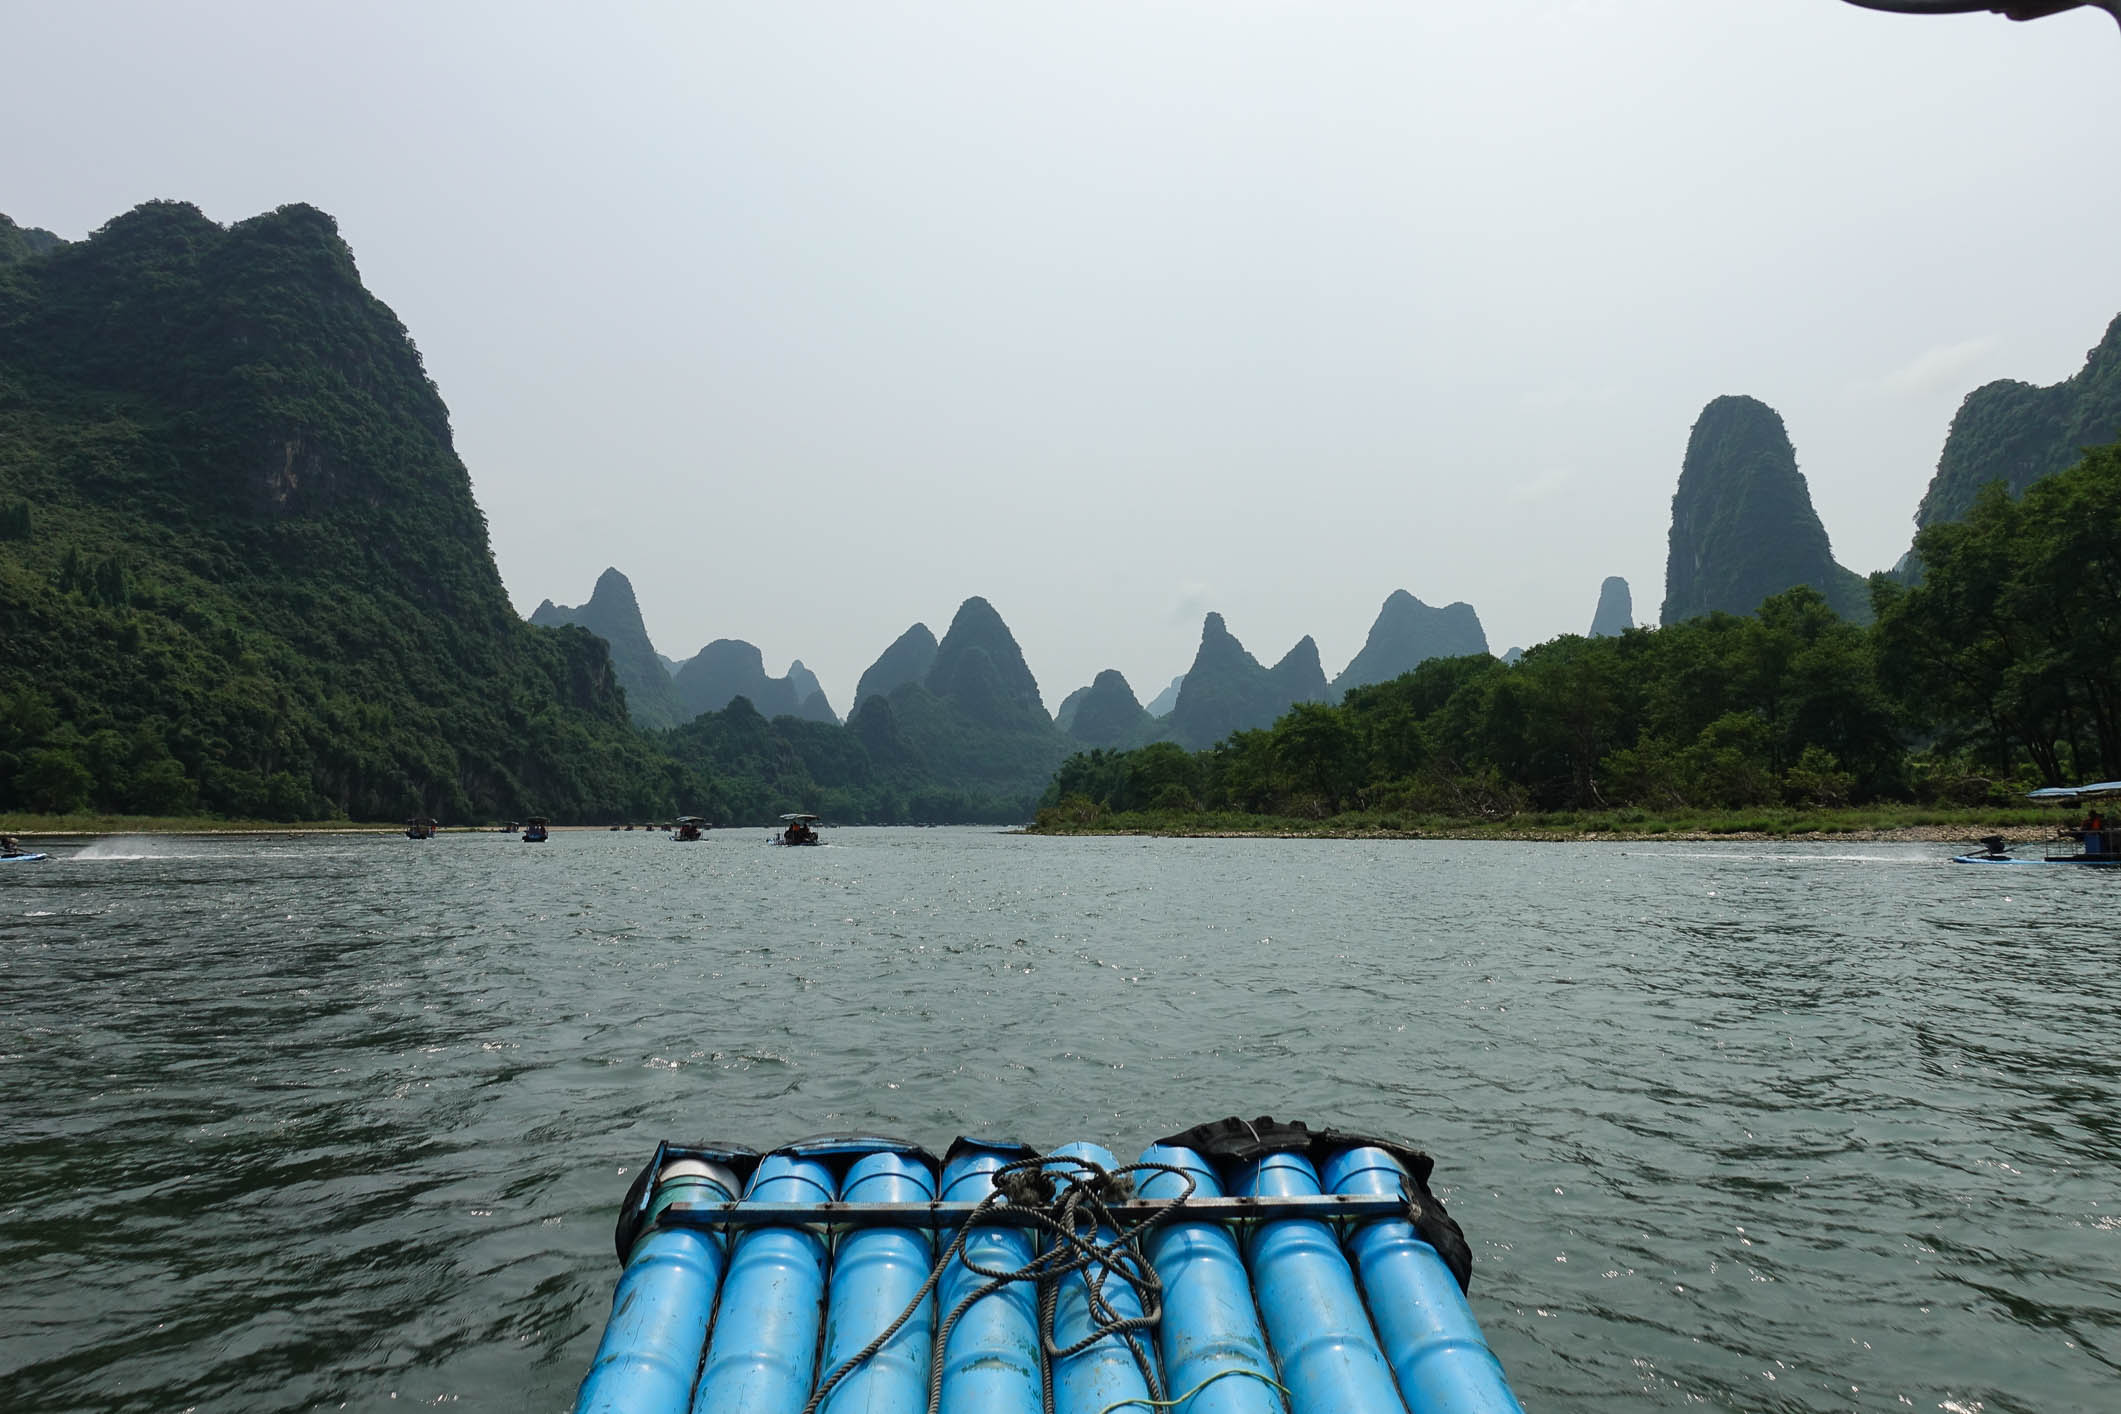 Views from the Li river